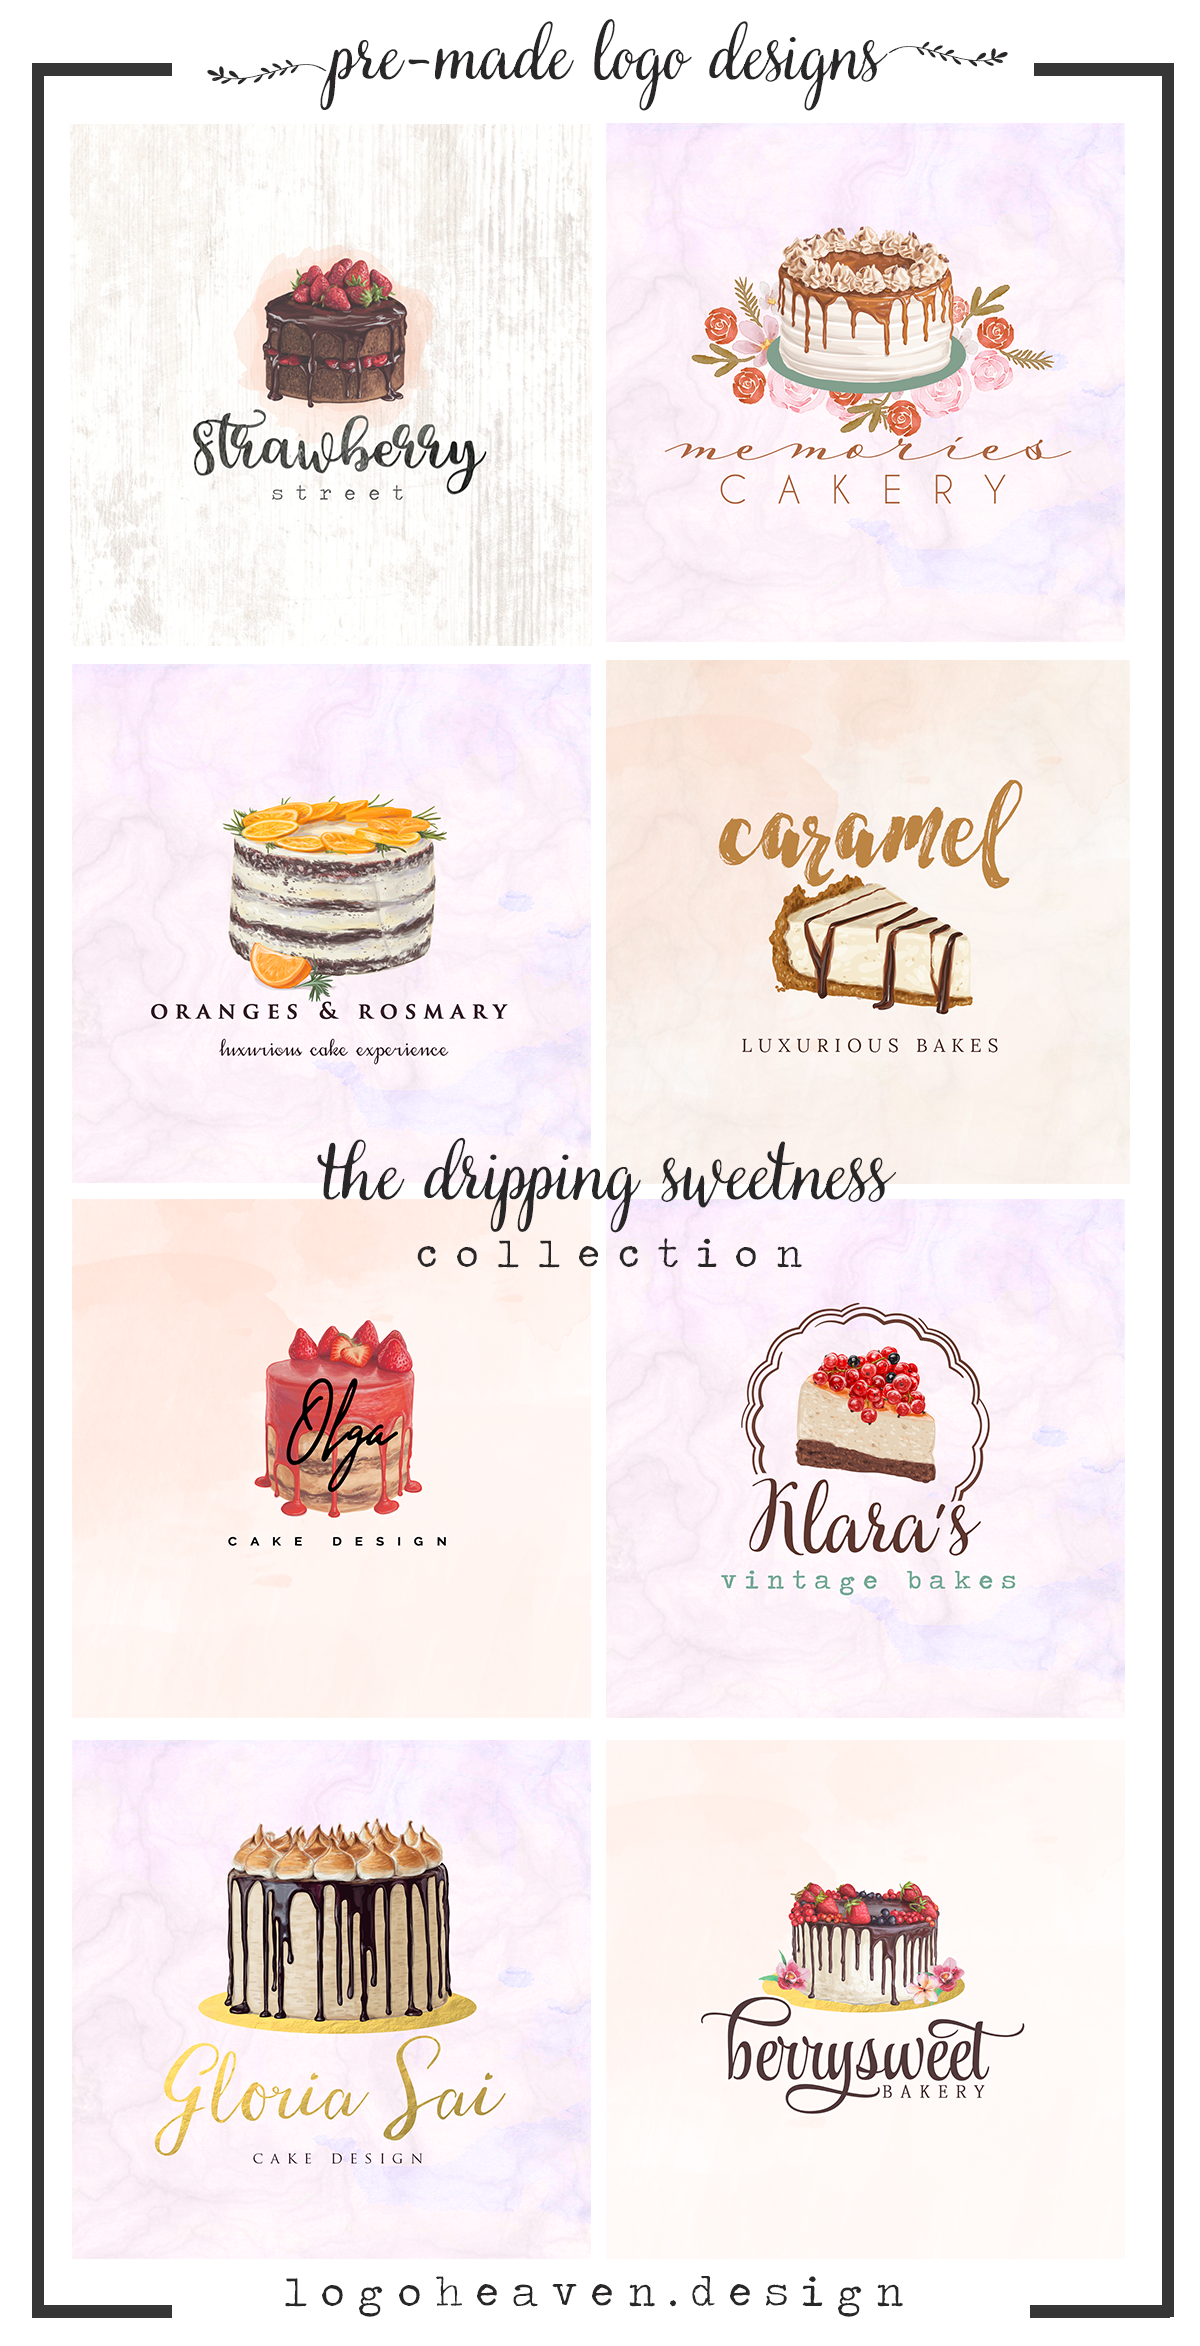 The Dripping Sweetness Collection Beautiful Cakery